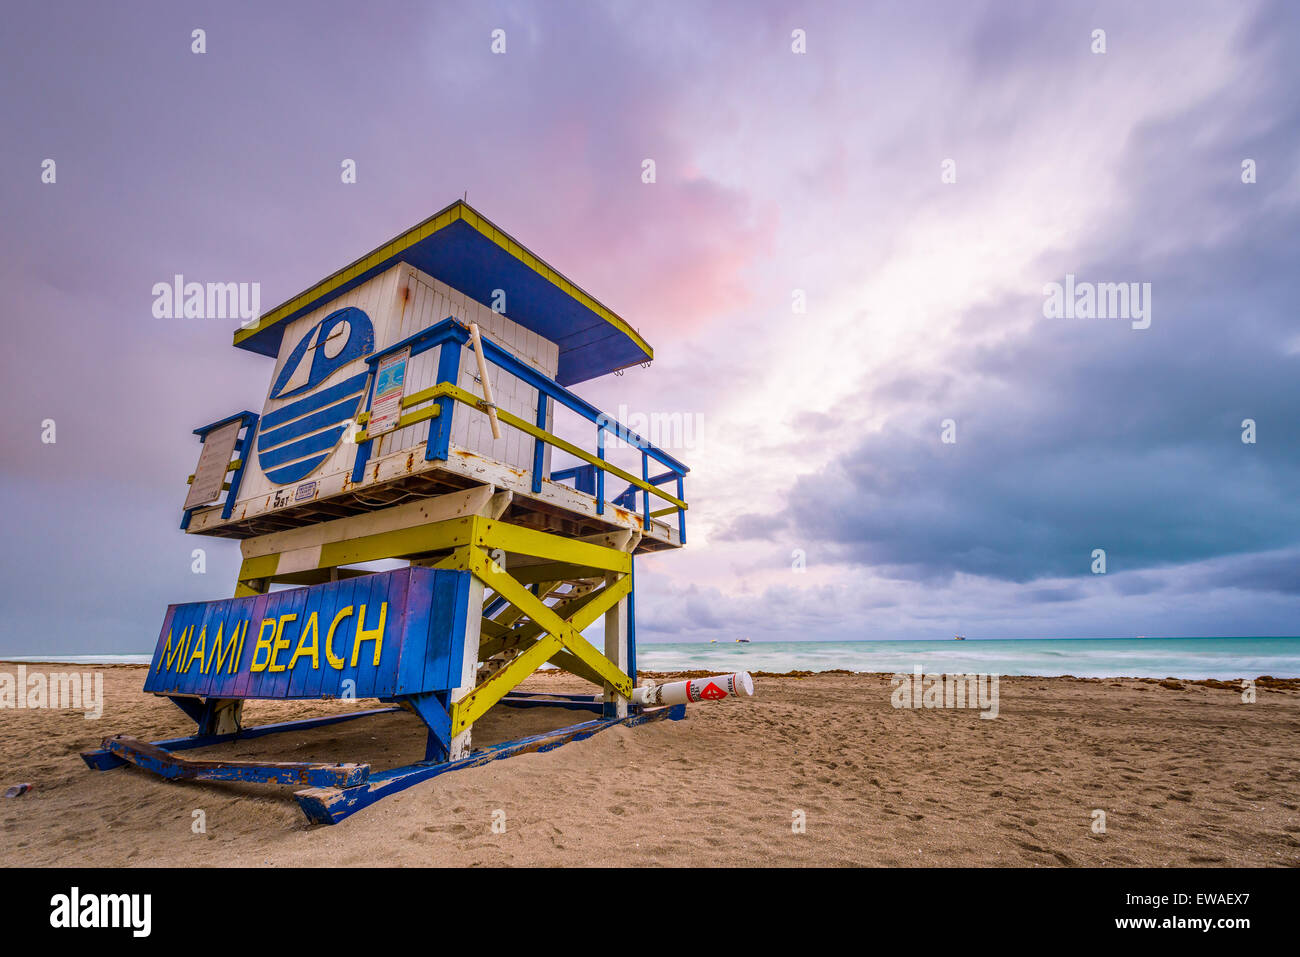 Miami Beach, Floride, USA life tour de garde. Photo Stock